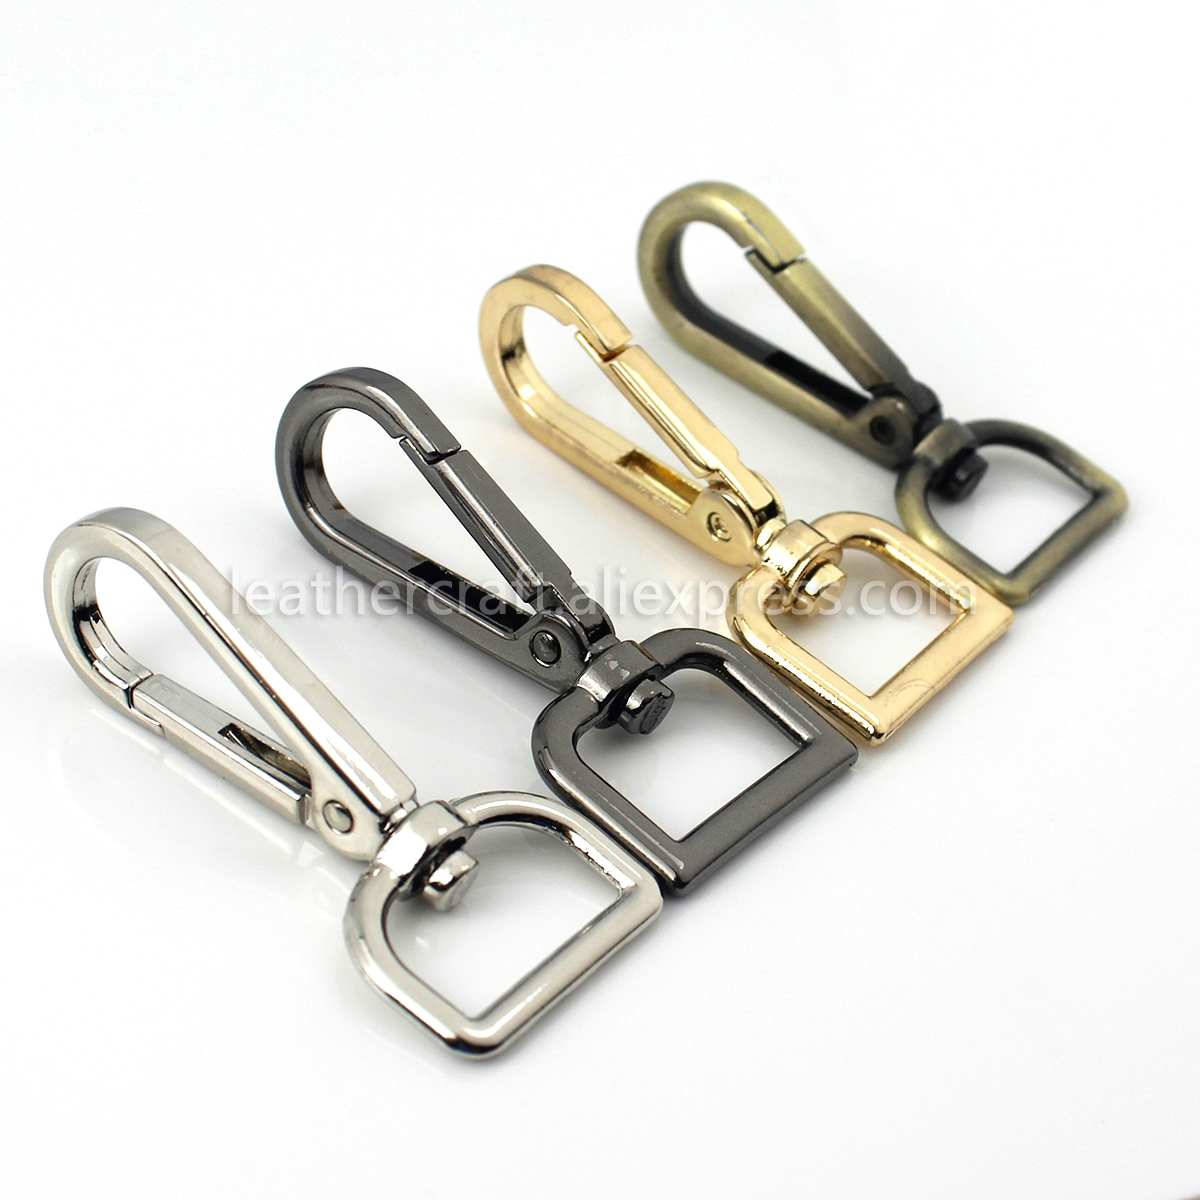 1pcs Metal Swivel Eye Snap Hook Trigger Clasps Clips for Leather Craft Bag Strap Belt Webbing Keychain Hooks Length 60mm 2 3 8 quot in Buckles amp Hooks from Home amp Garden